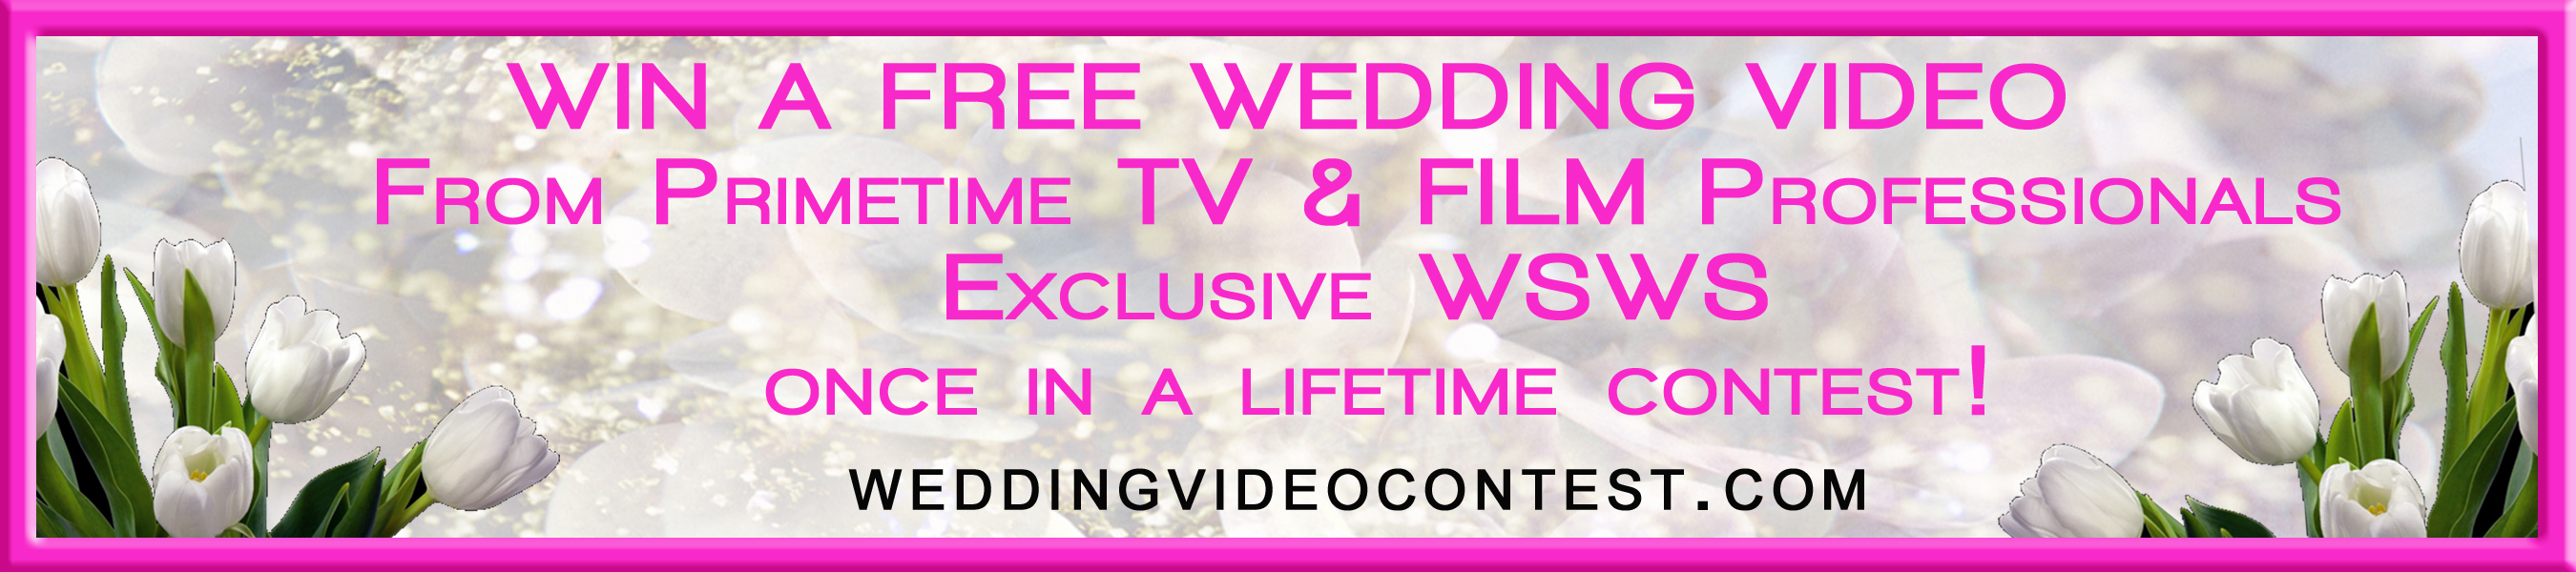 Win a free video of your wedding by Hollywood professionals